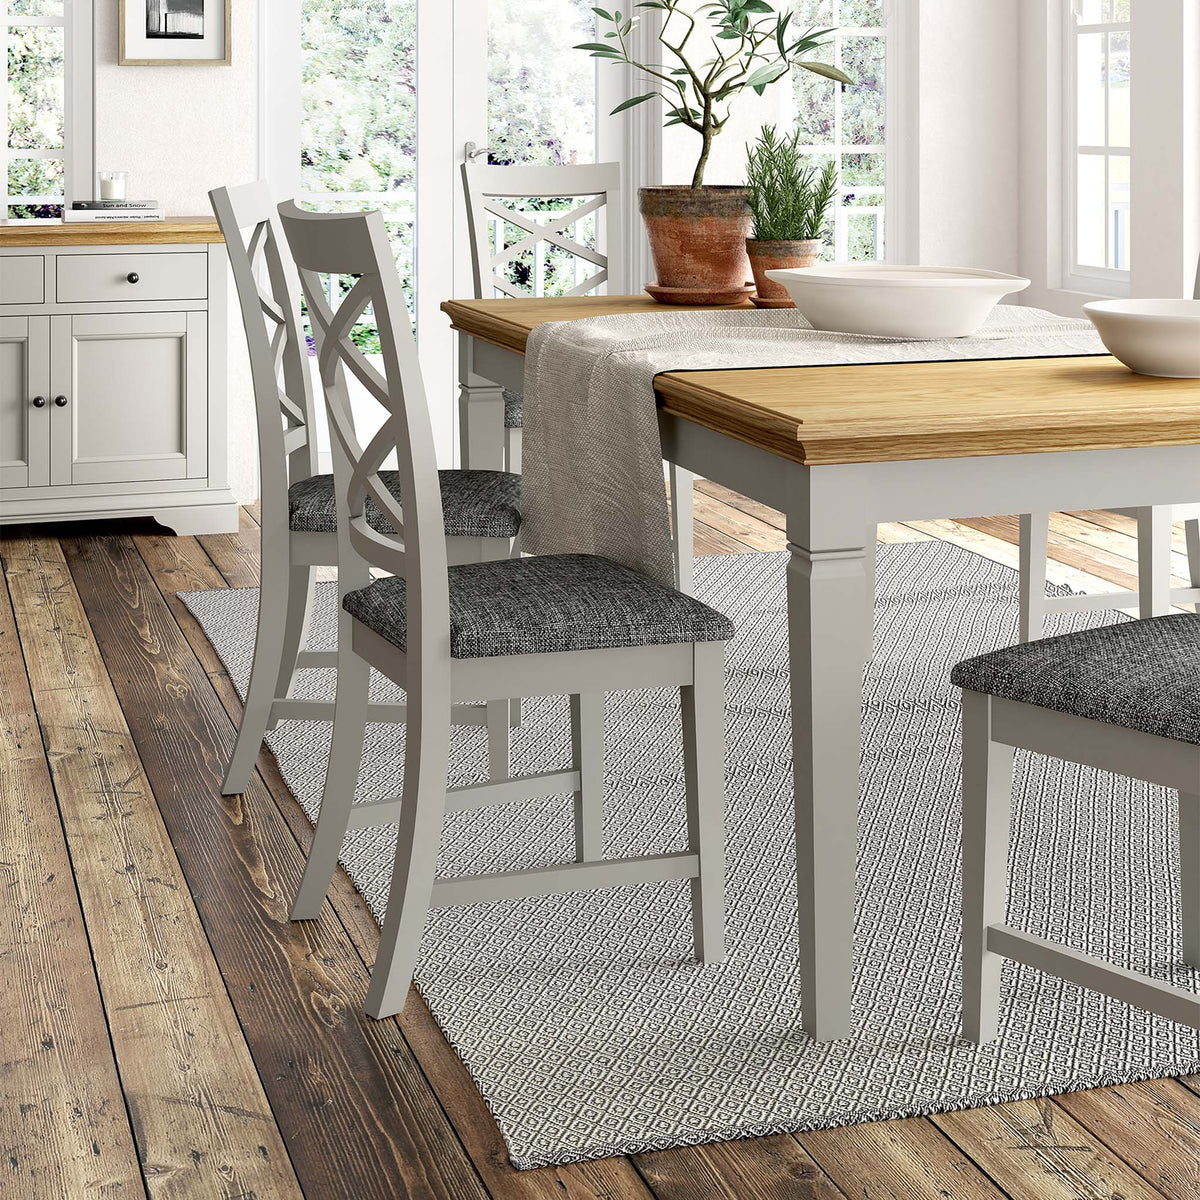 Normandy Grey 120-165cm Dining Table - Lifestyle